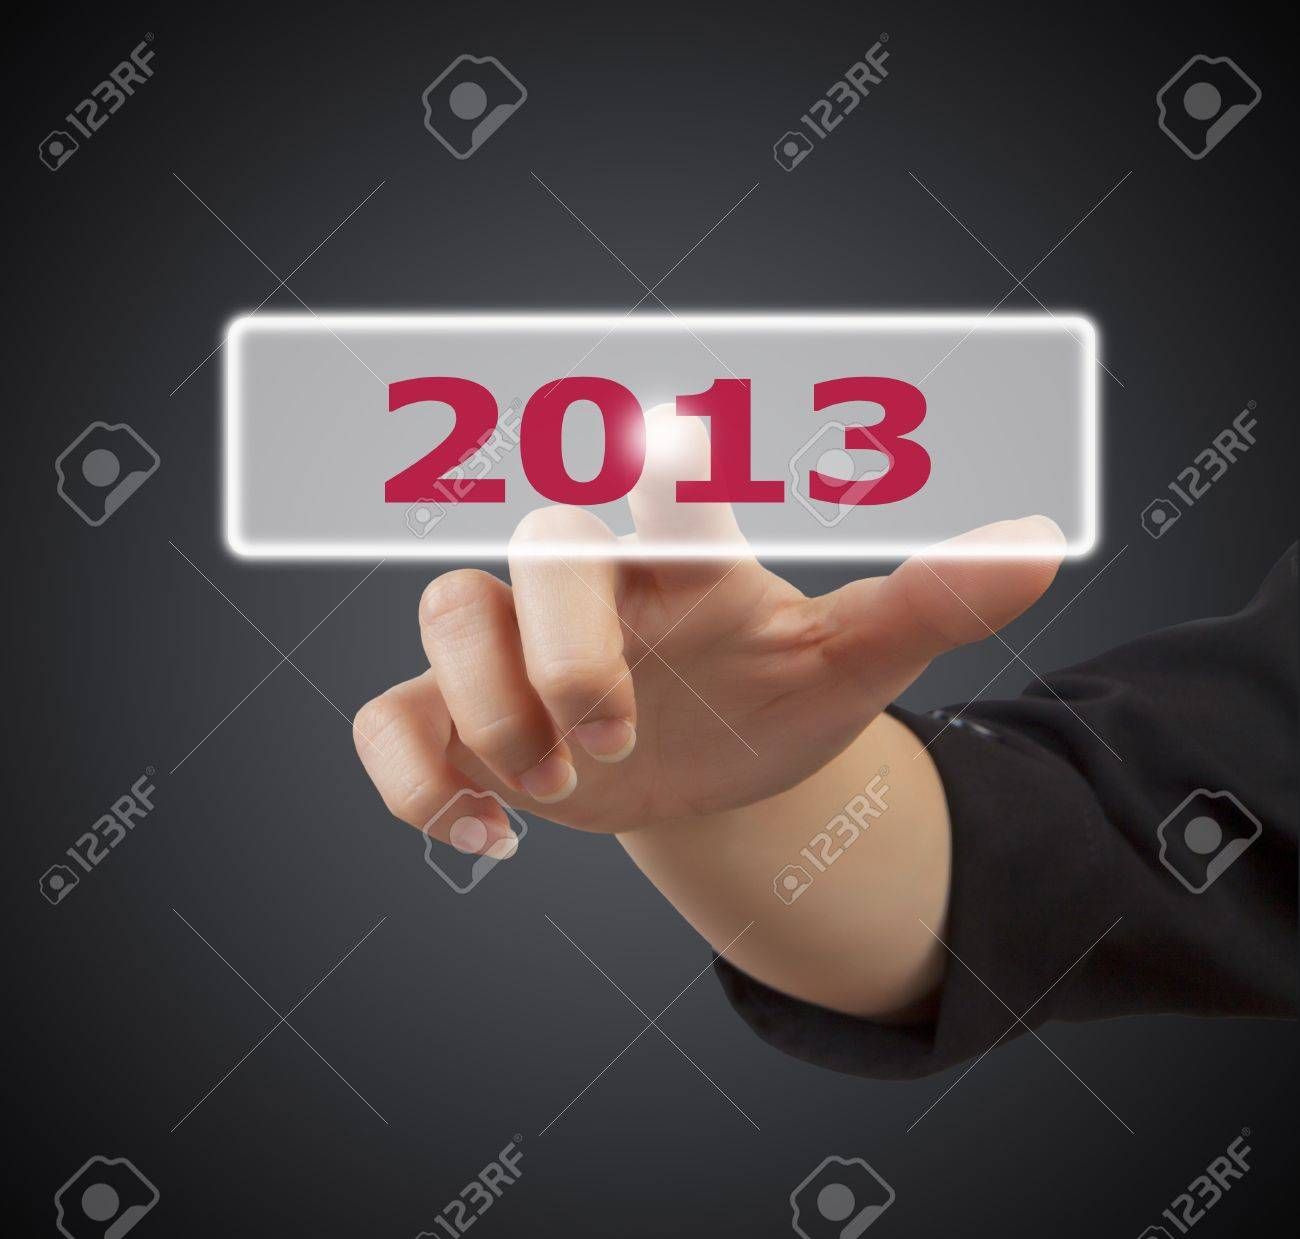 woman hand touching button 2013 keyword, on gray background Stock Photo - 15824412